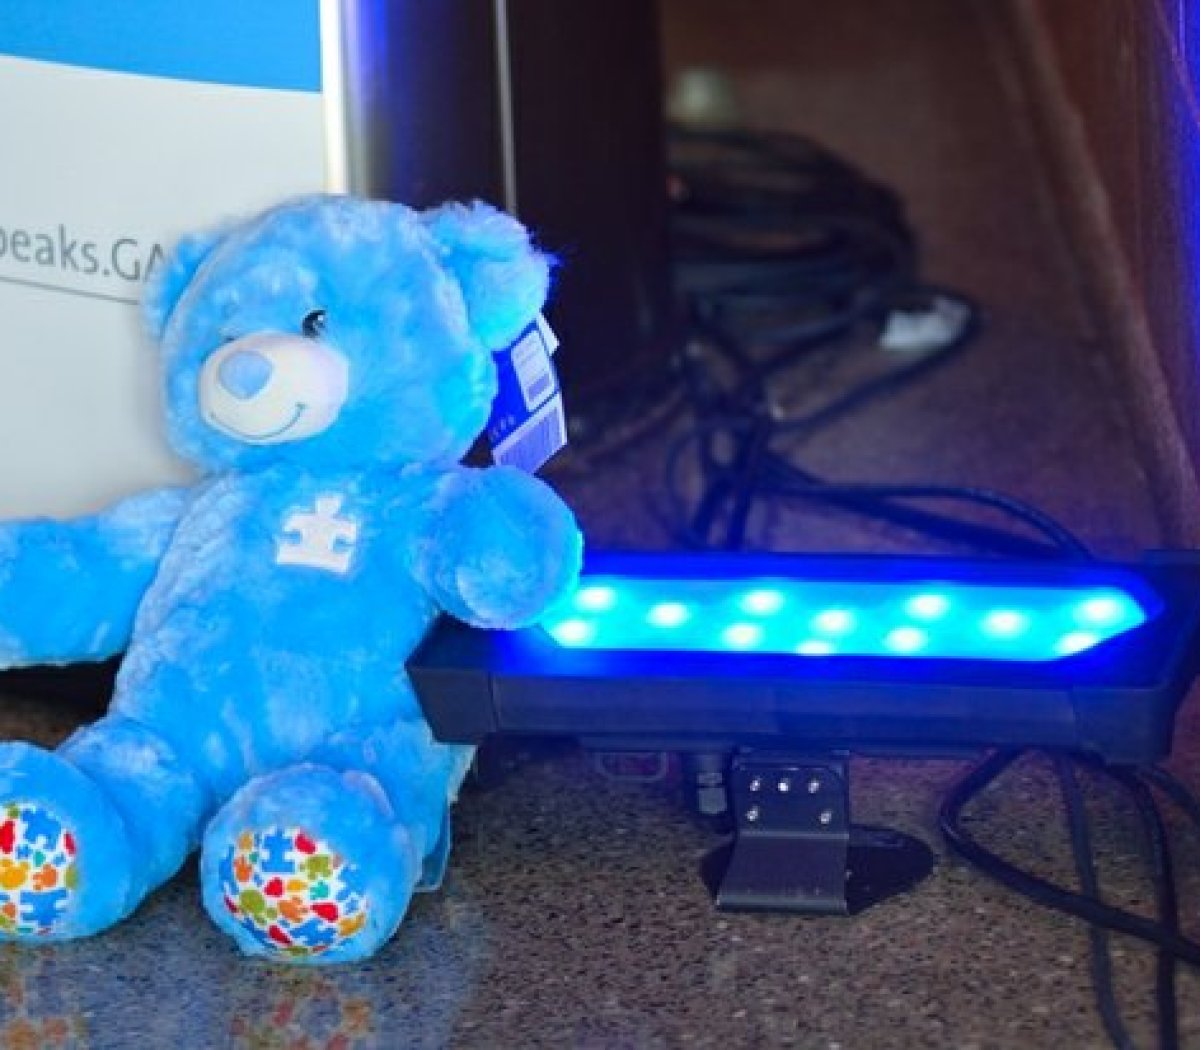 Blue teddy bears and lights decorate the lobby of THEARC during Autism Speaks Light It Up Blue event, Saturday, April 2, 2016 in Southeast. /Photo by Patricia Little @5feet2